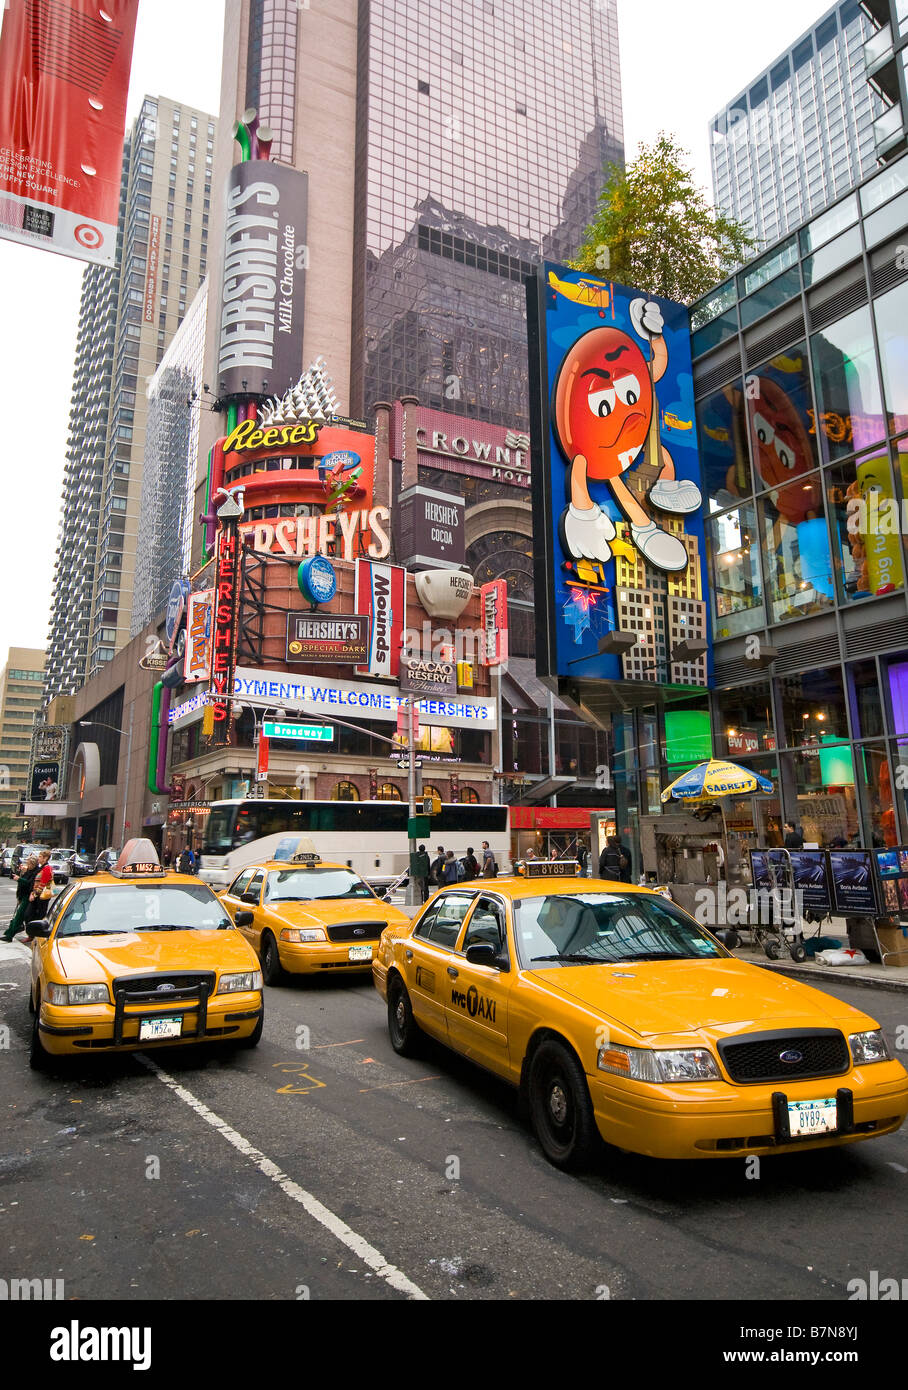 Yellow taxi cabs driving by the M&M's store, New York, USA - Stock Image